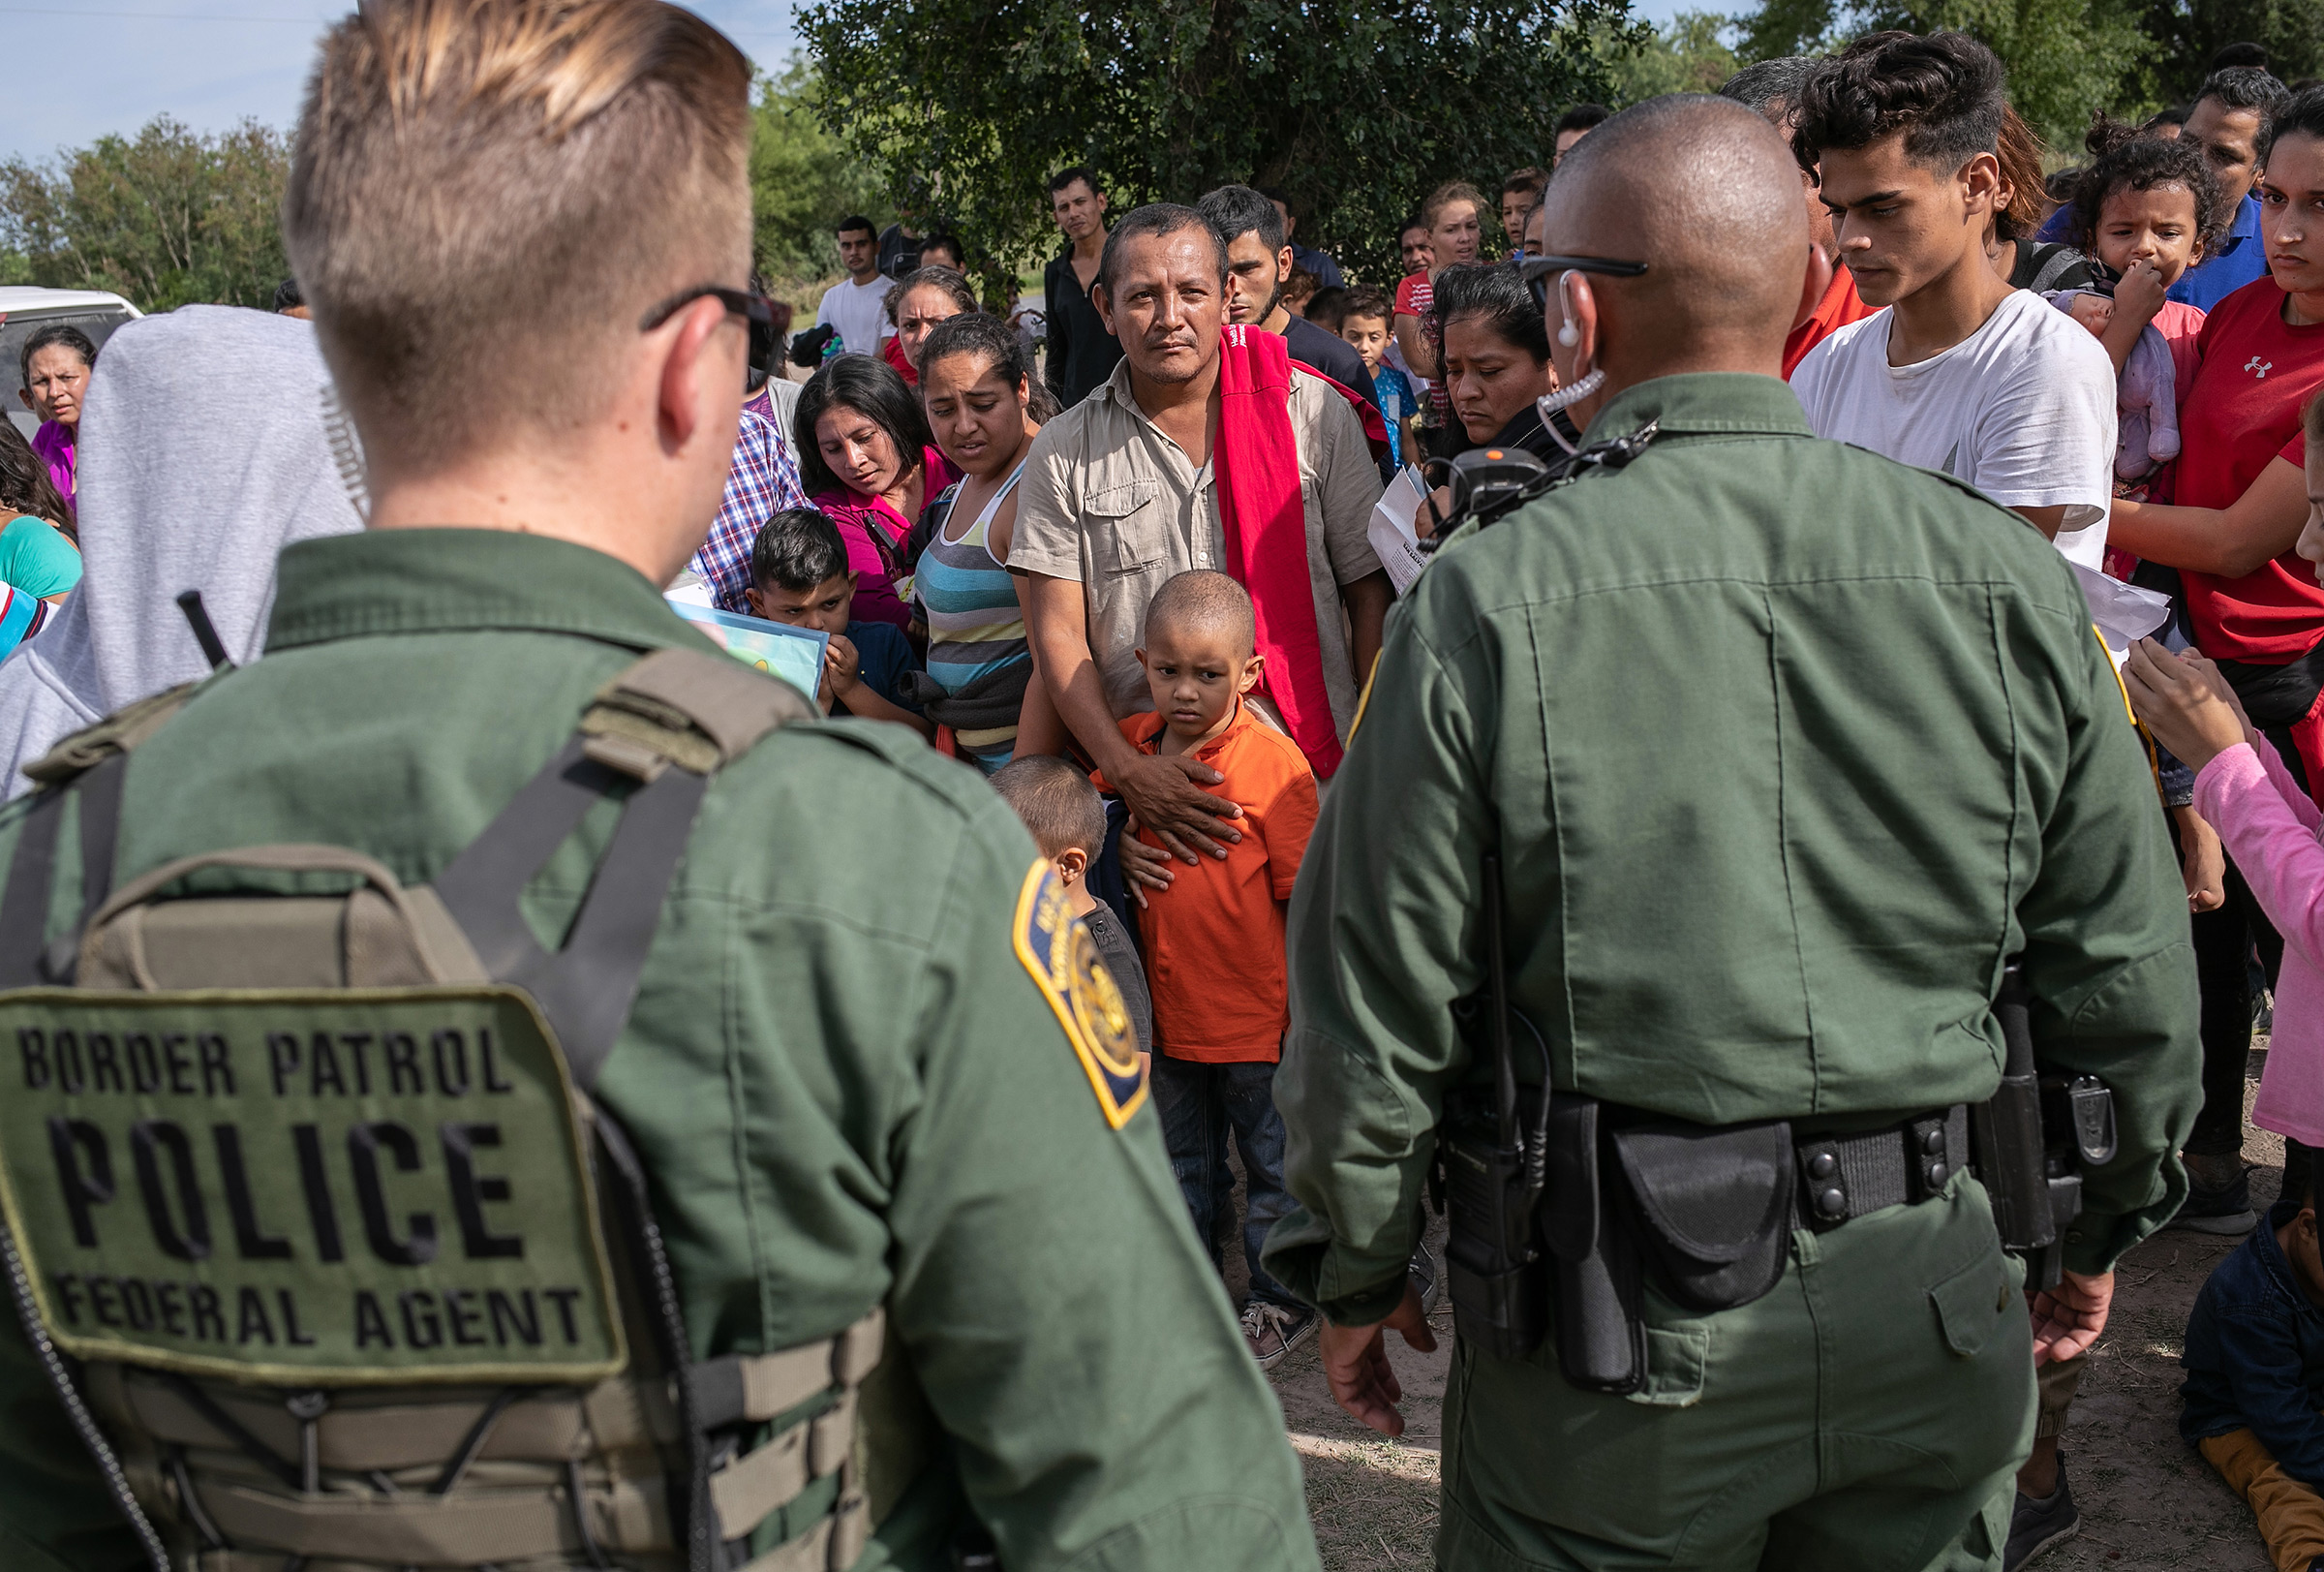 U.S. Border Patrol agents watch over immigrants after taking them into custody on July 02, 2019 in Los Ebanos, Texas.